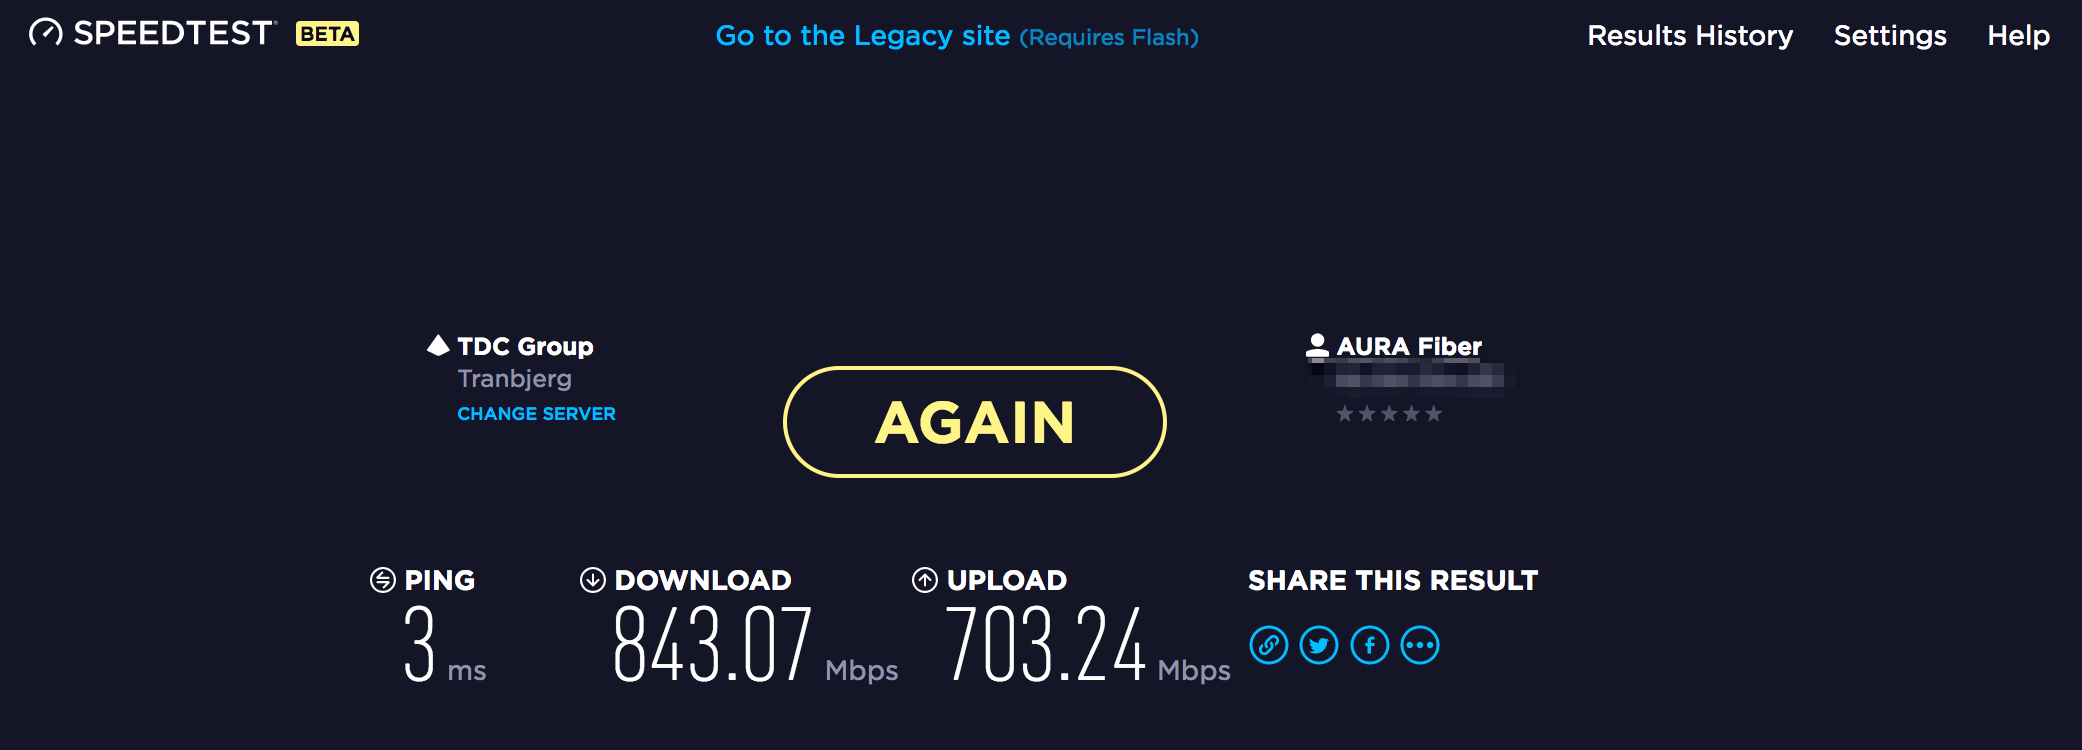 I installed Ubiquiti Unifi Access Points at home, and they